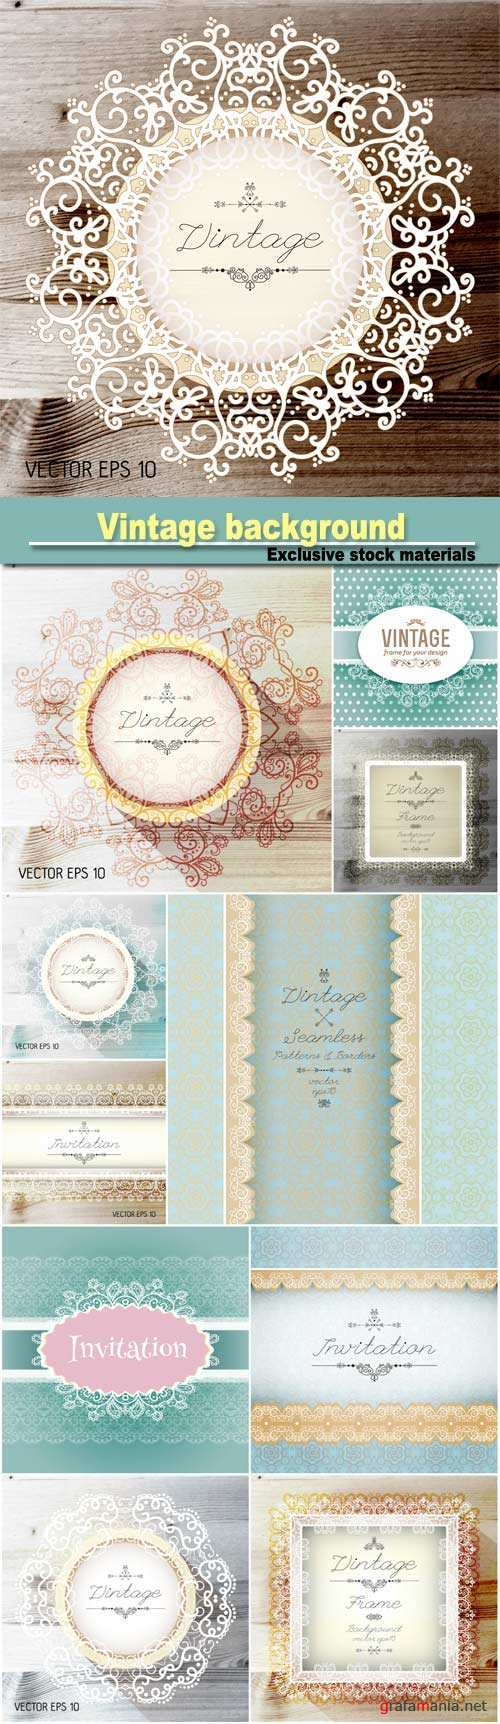 Vintage seamless background and border, invitation with lace, vector